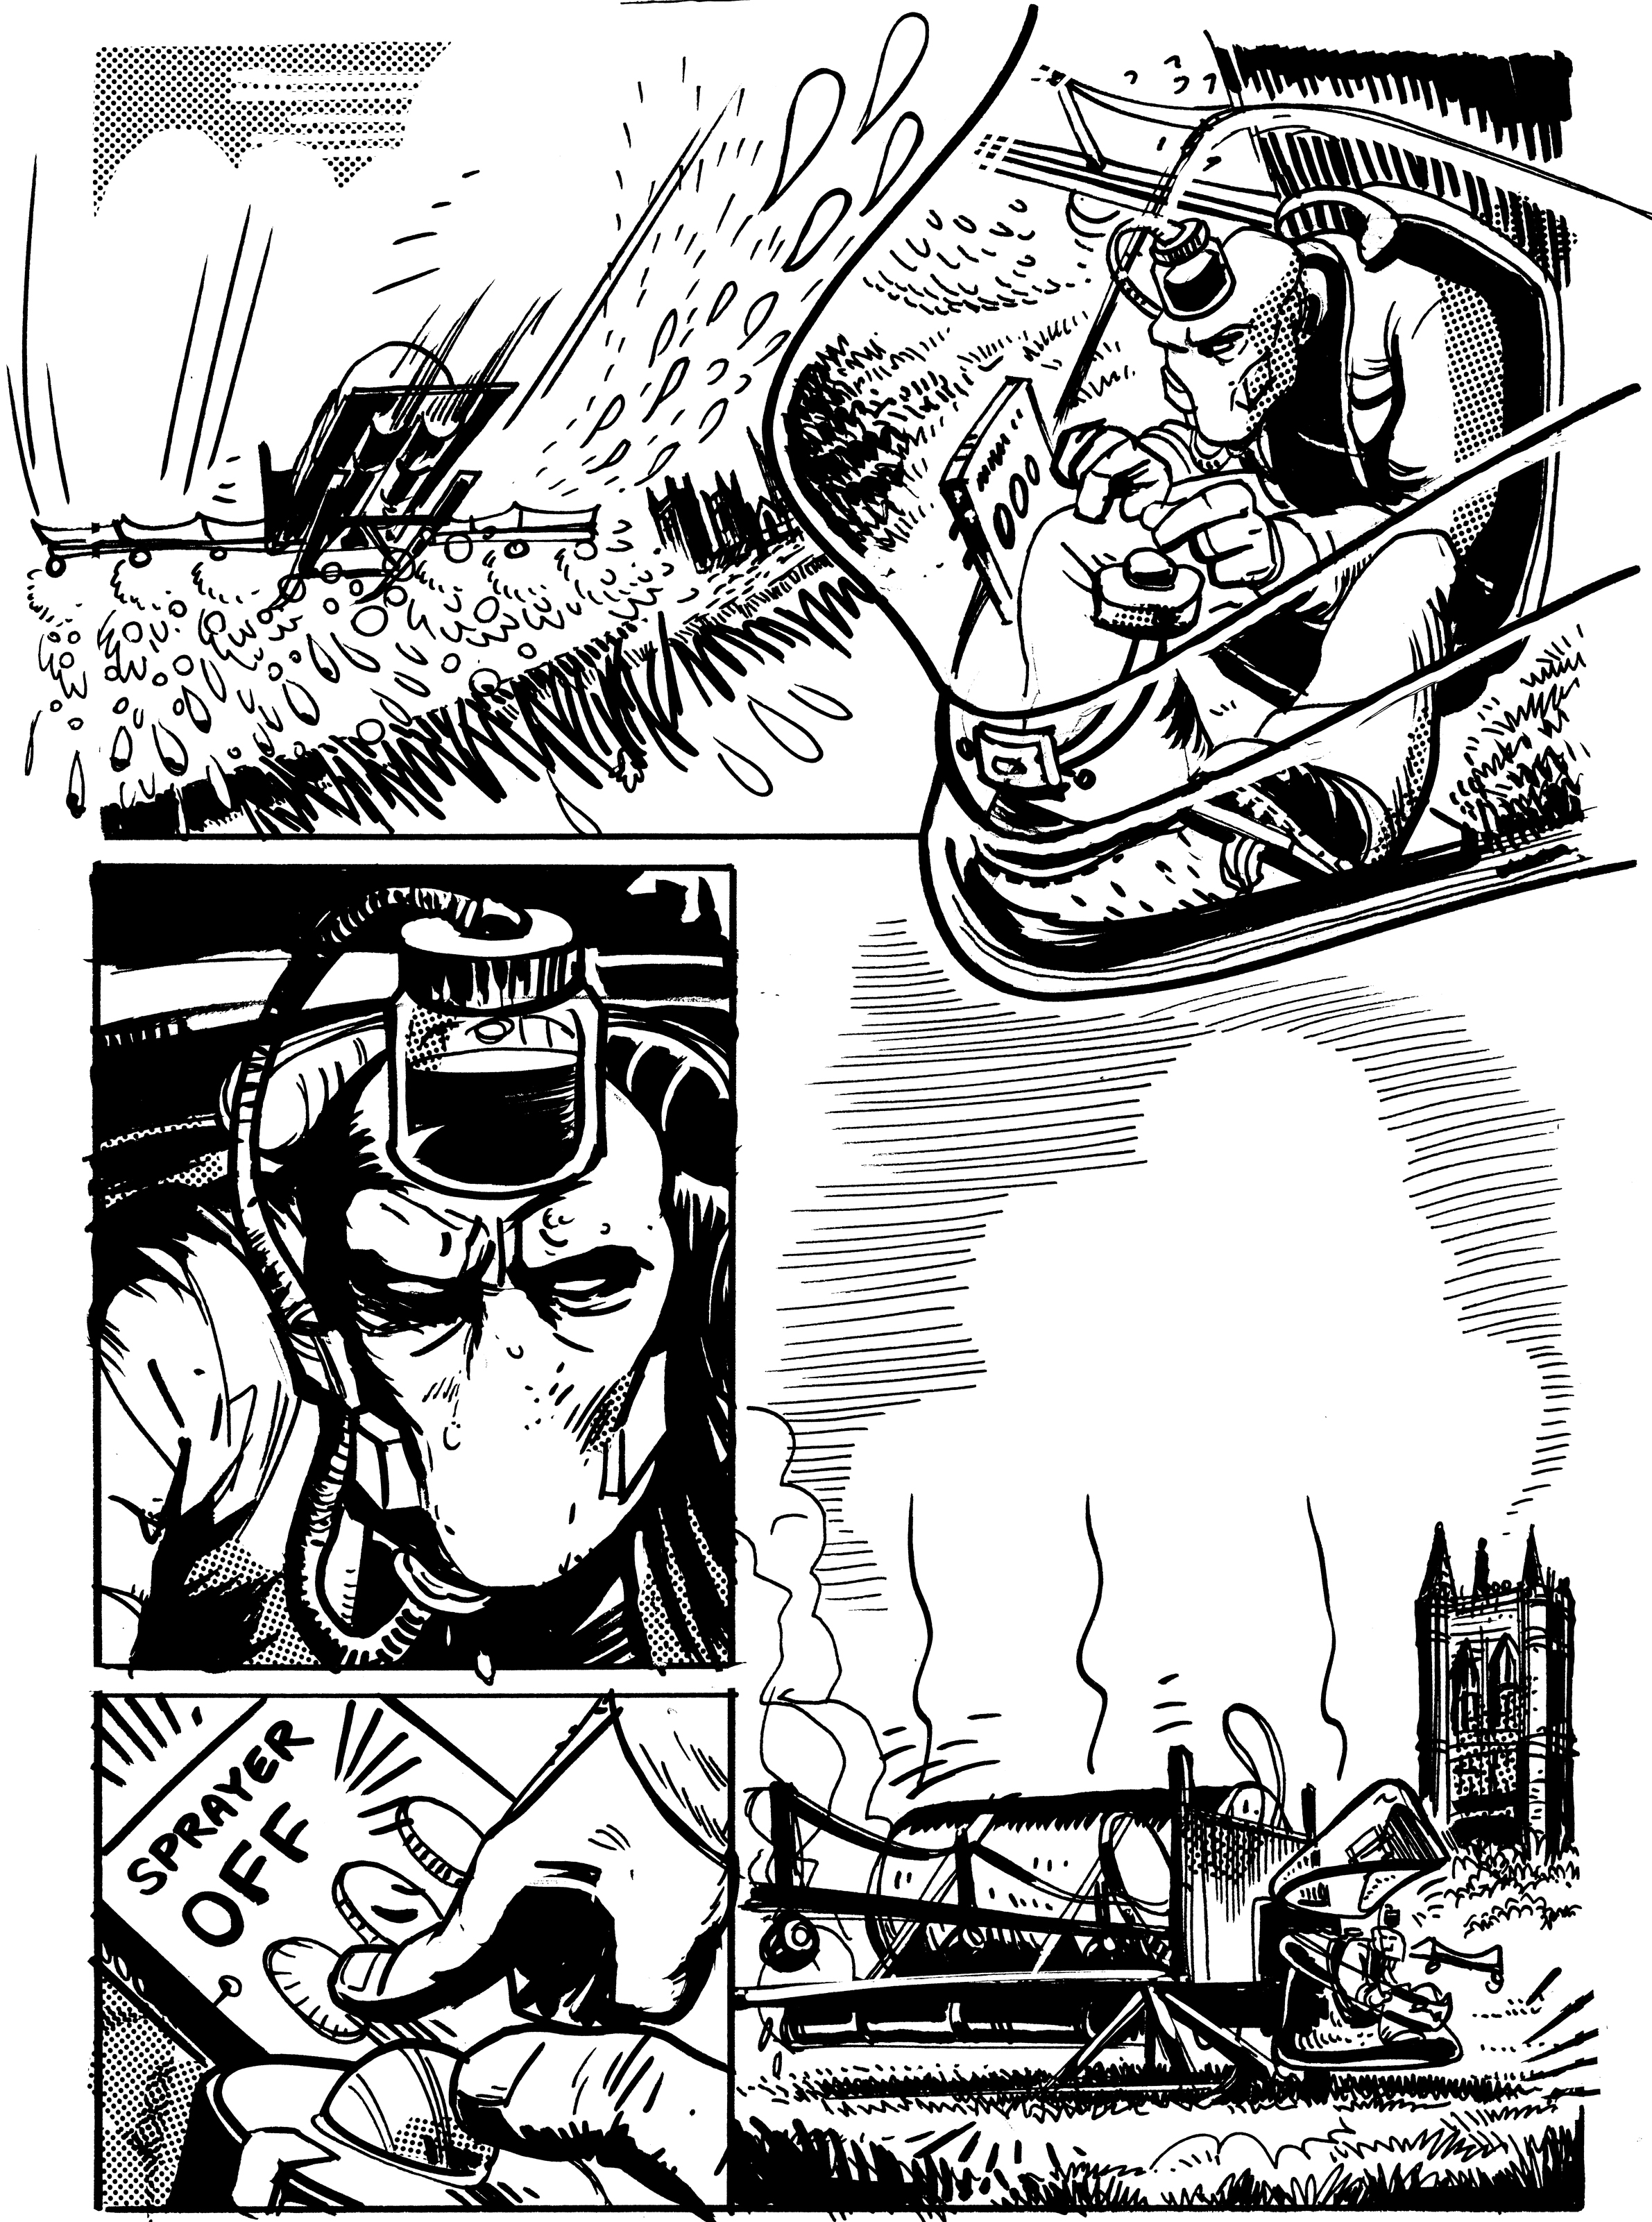 The alien worker Bron, known as Jarhead to his unkind workmates, flies the crop-sprayer and lands near the remains of Lincoln Cathedral. Page from book three. The Mice comic by Roger Mason